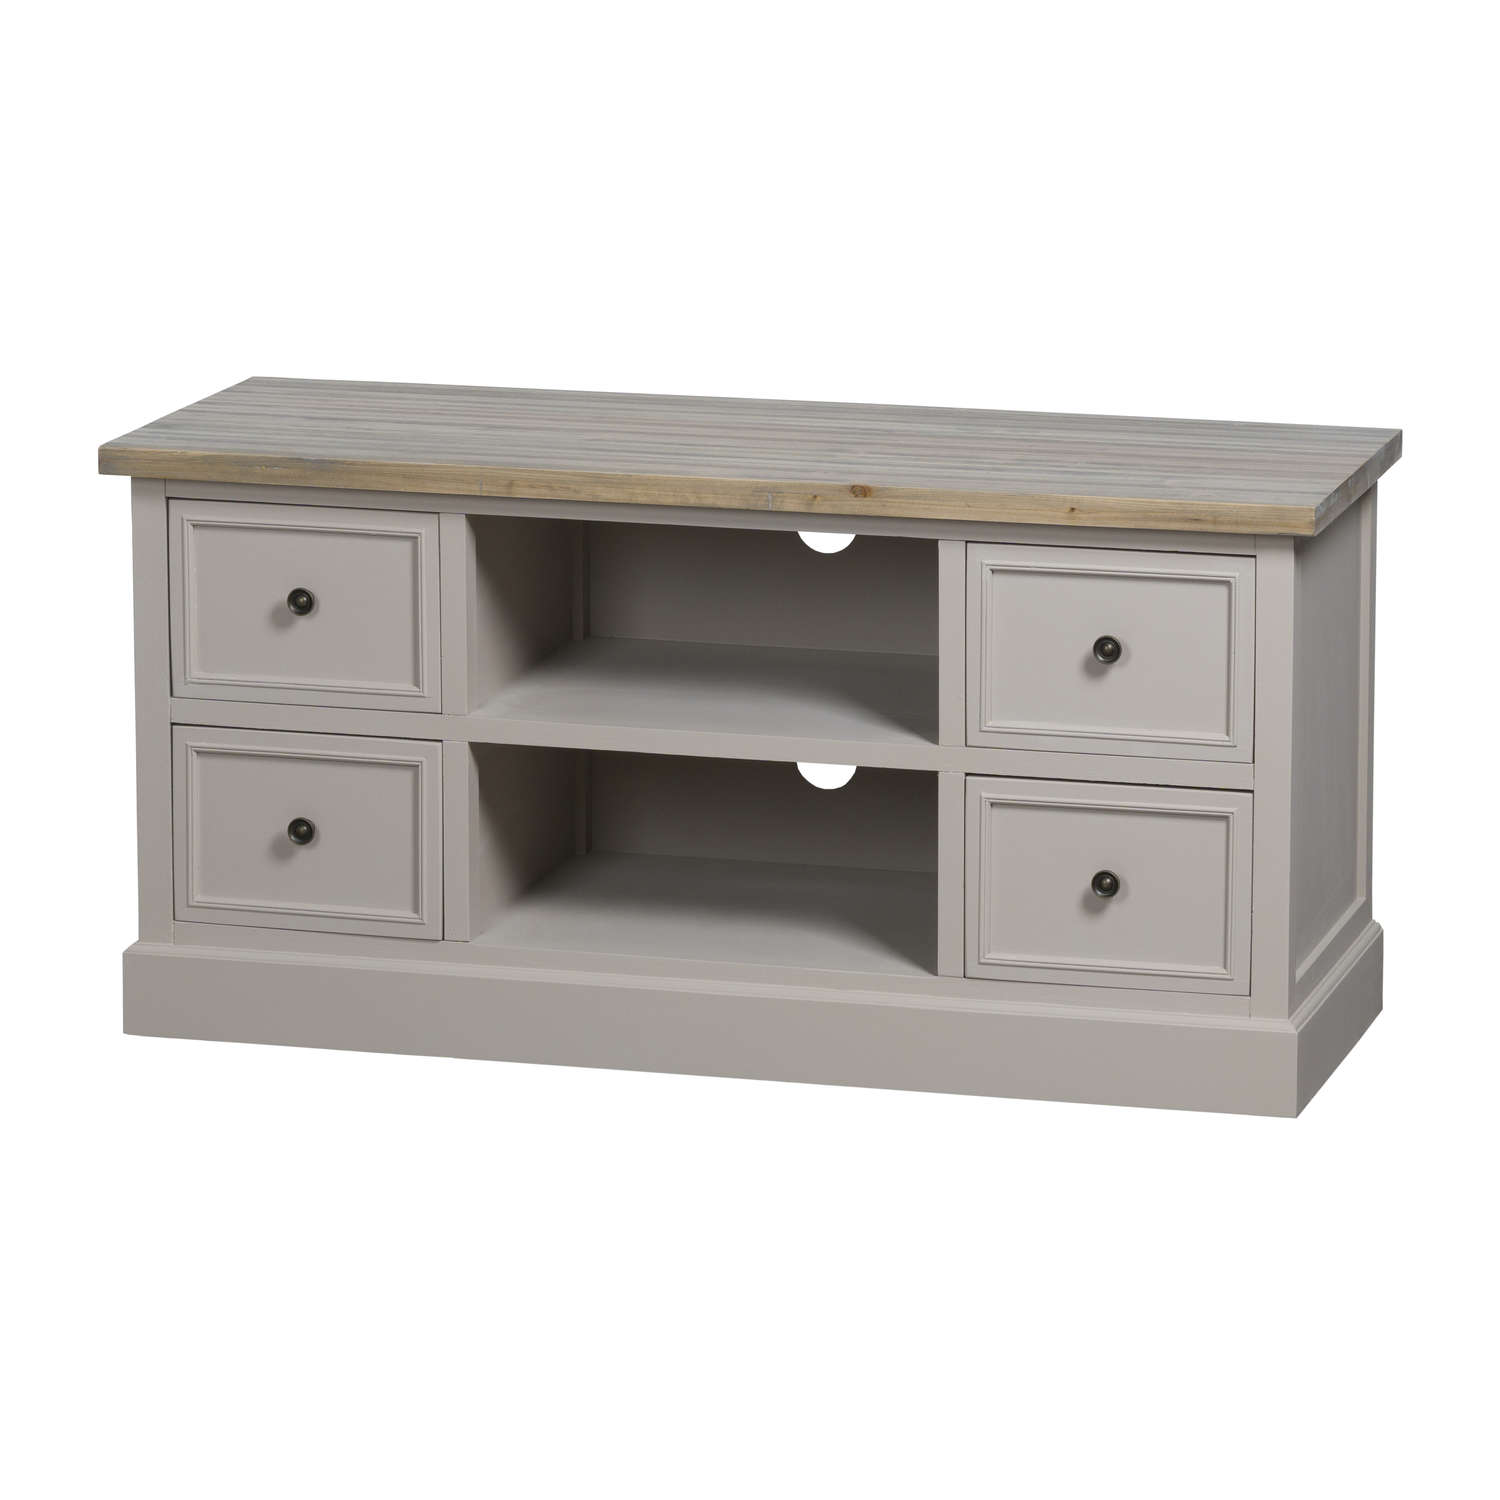 The Studley Collection 4 Draw TV Media Unit